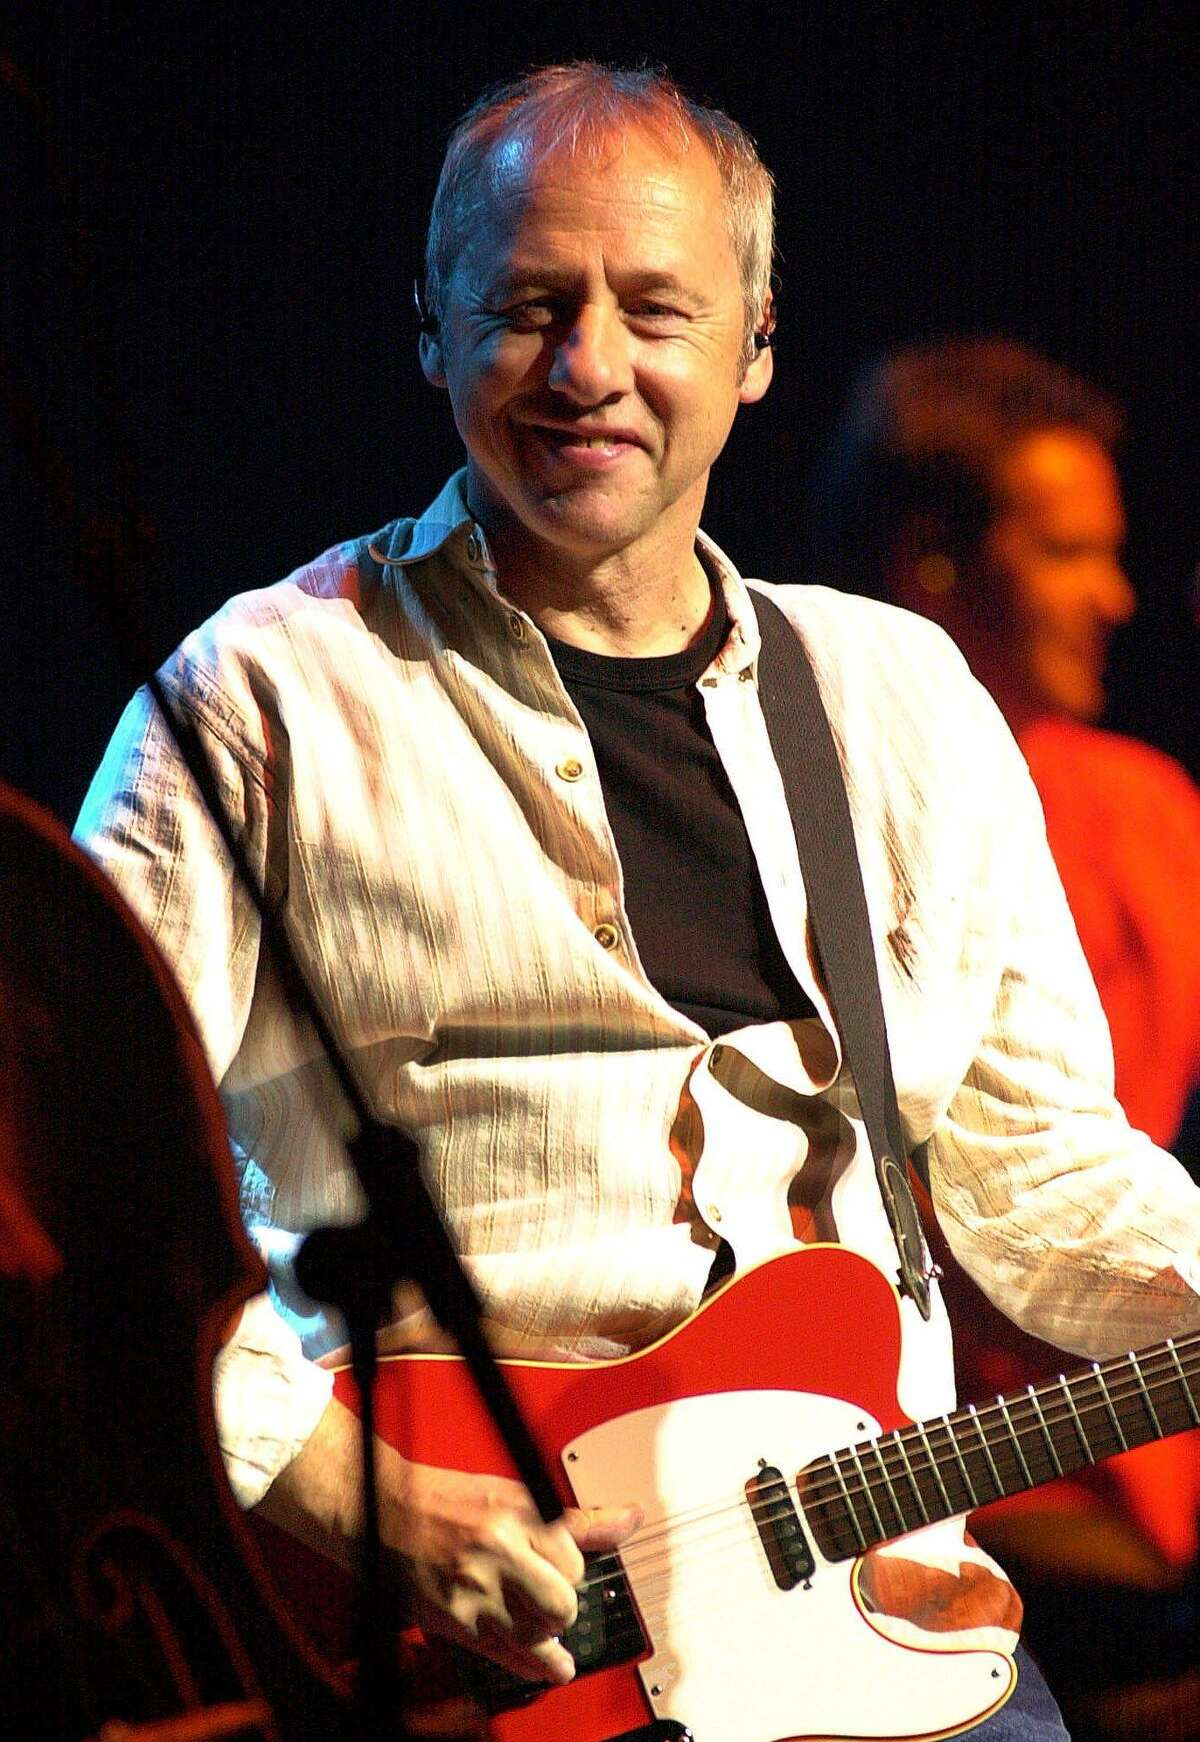 Mark Knopfler, the founder of the band Dire Straits, shown performing in New York in this April 29, 2001 file photo (AP Photo/Stephen Chernin, File)